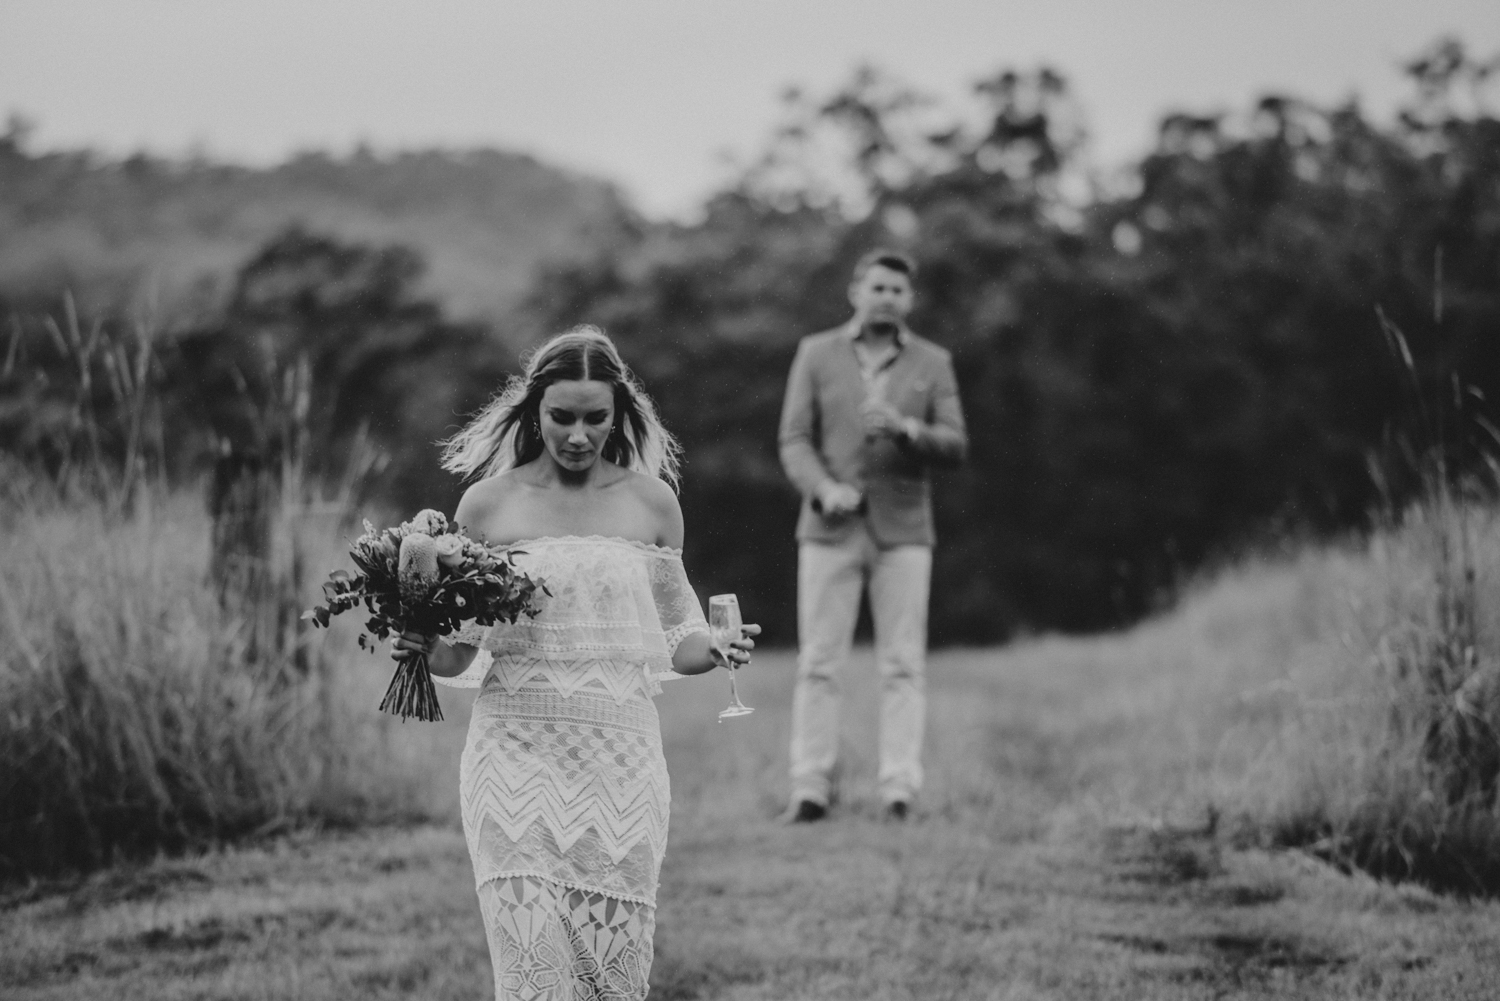 Brisbane Engagement Photographer | Wedding-Elopement Photography-44.jpg